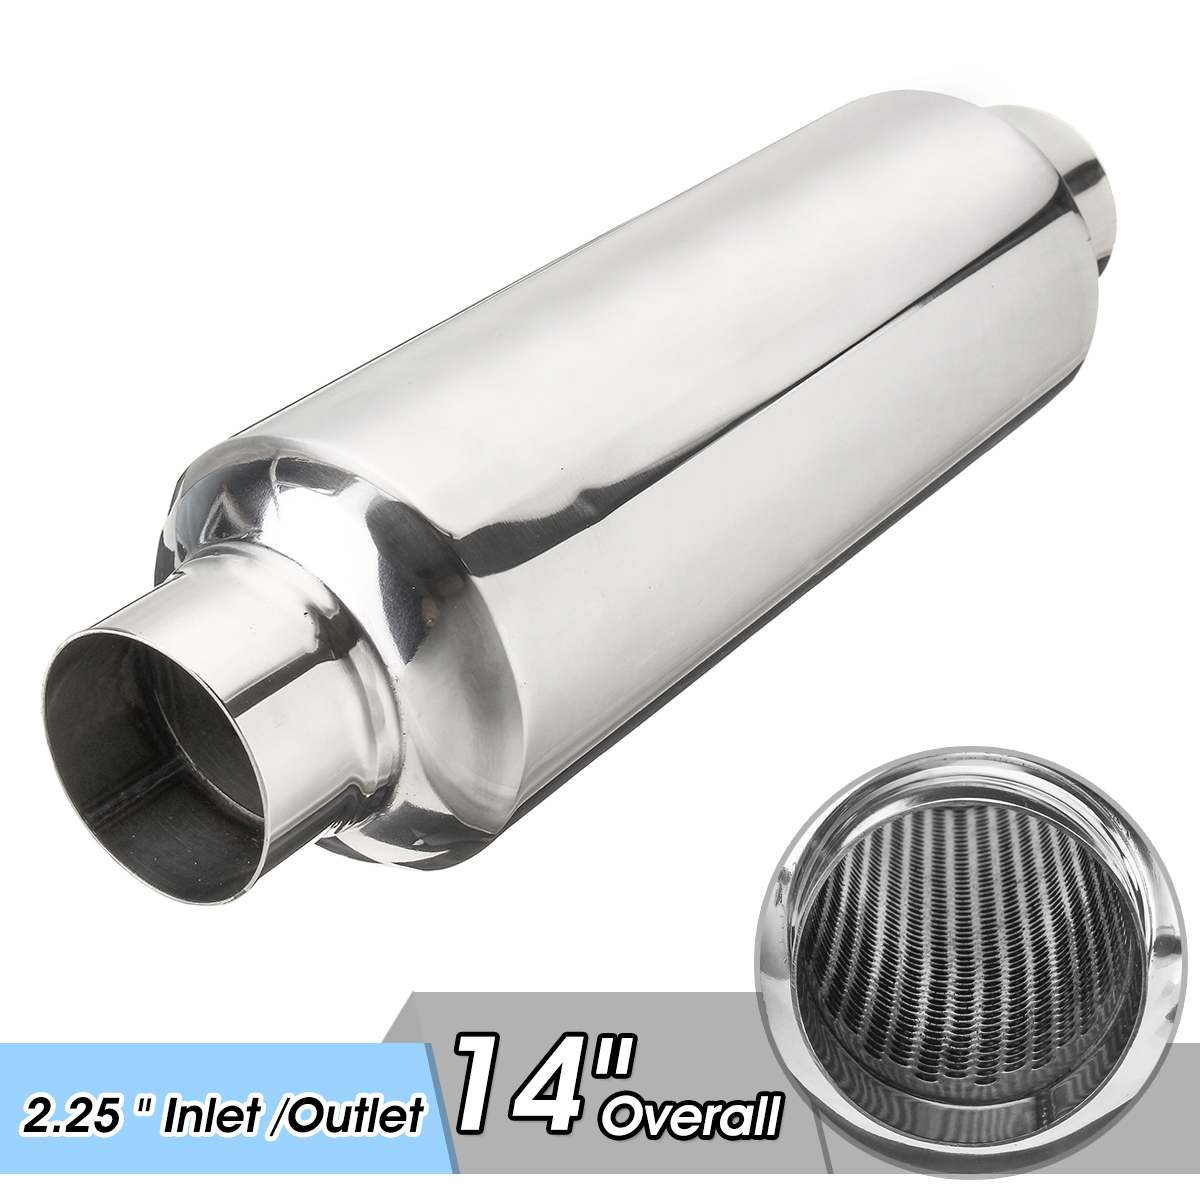 Universal Car Exhaust Muffler Resonator 2.25 Inlet/Outlet Exhaust Tip Pipe Tube Stainless Steel